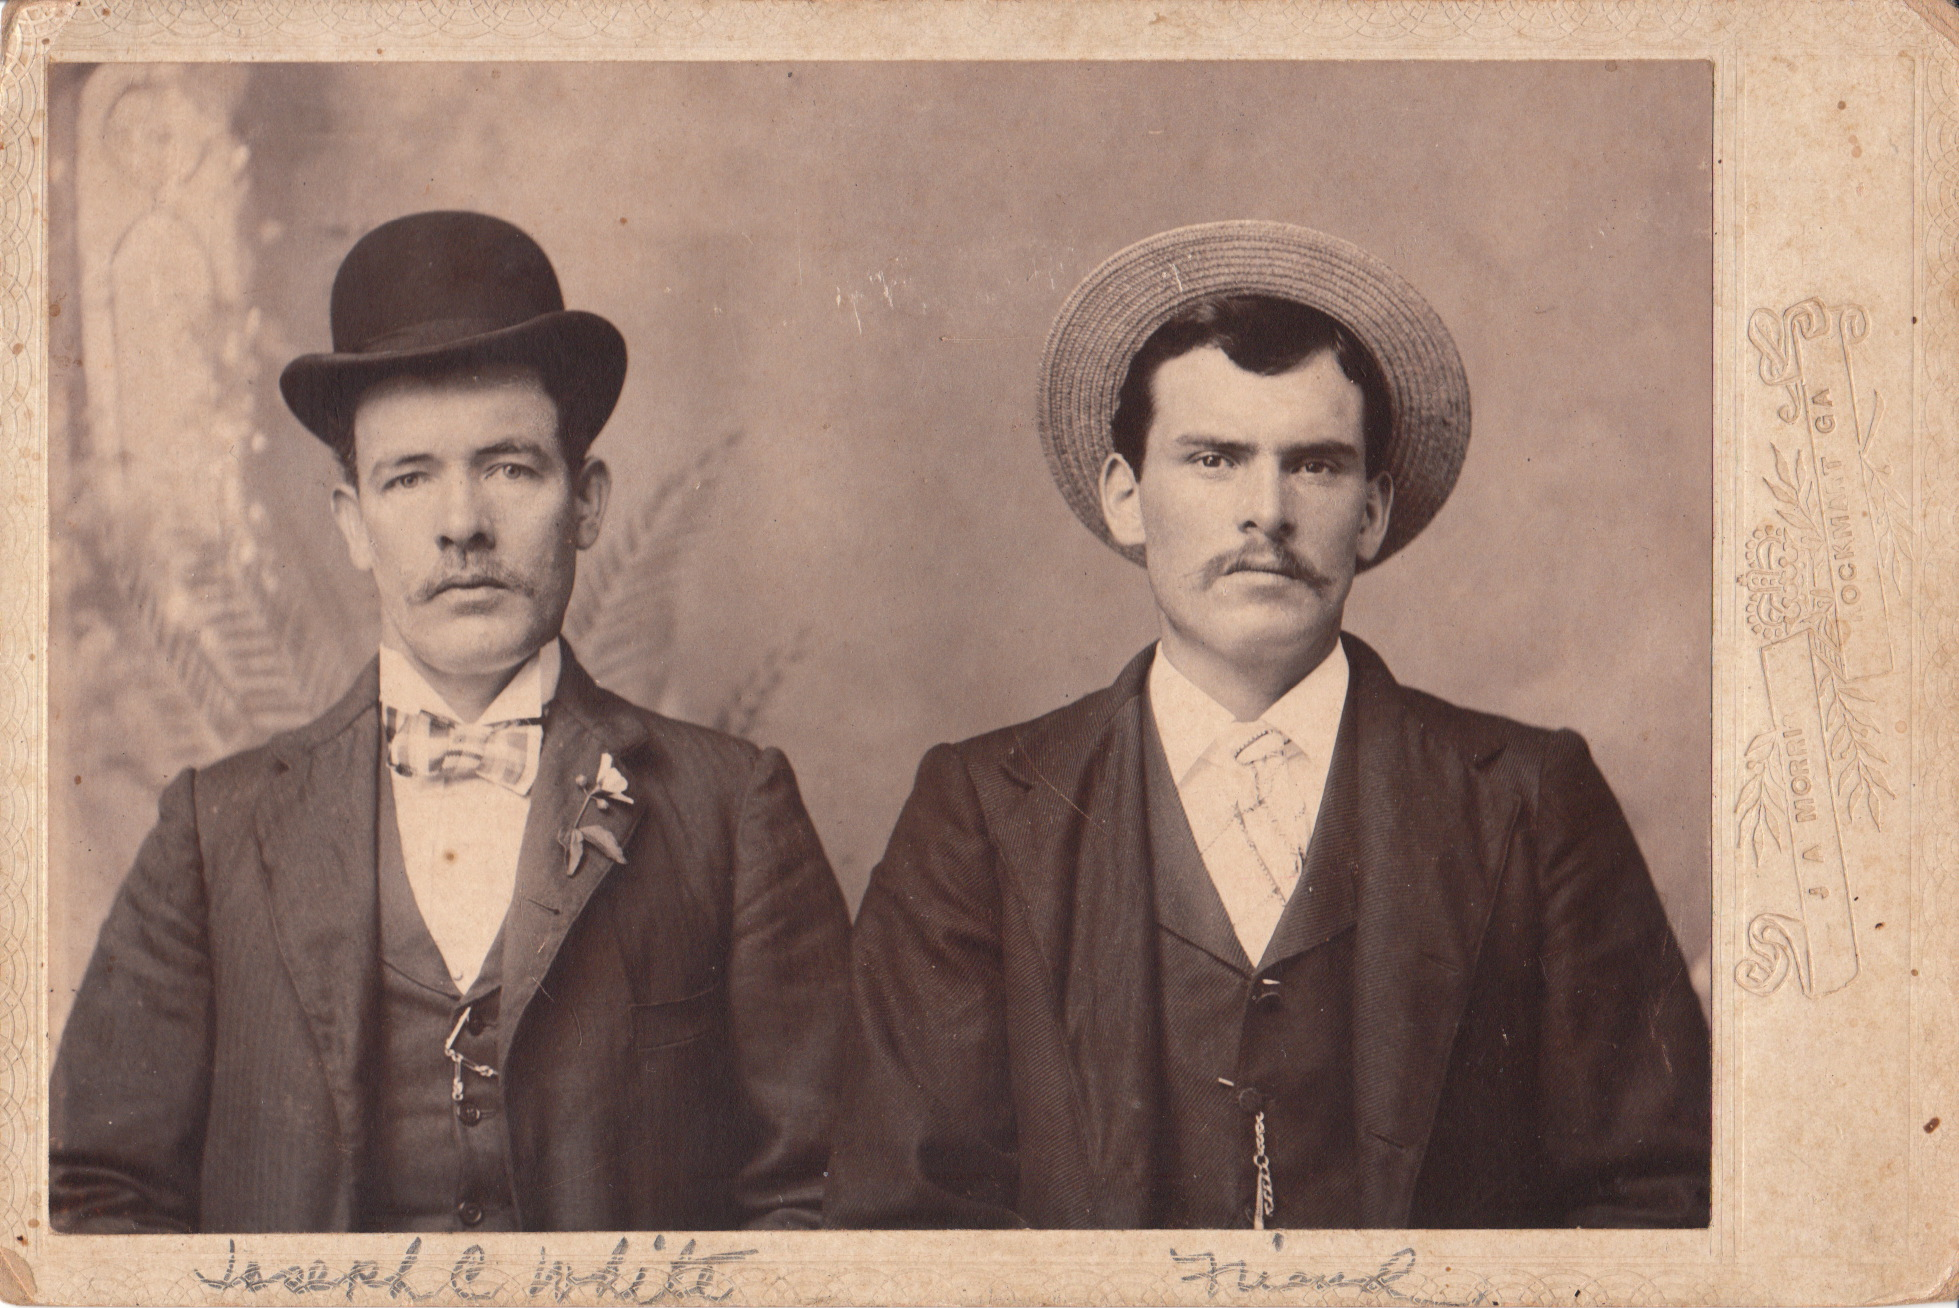 an analysis of butch cassidy and the sundance kid Read this essay on analytical report of butch cassidy and the sundance kid (1969) come browse our large digital warehouse of free sample essays get the knowledge.